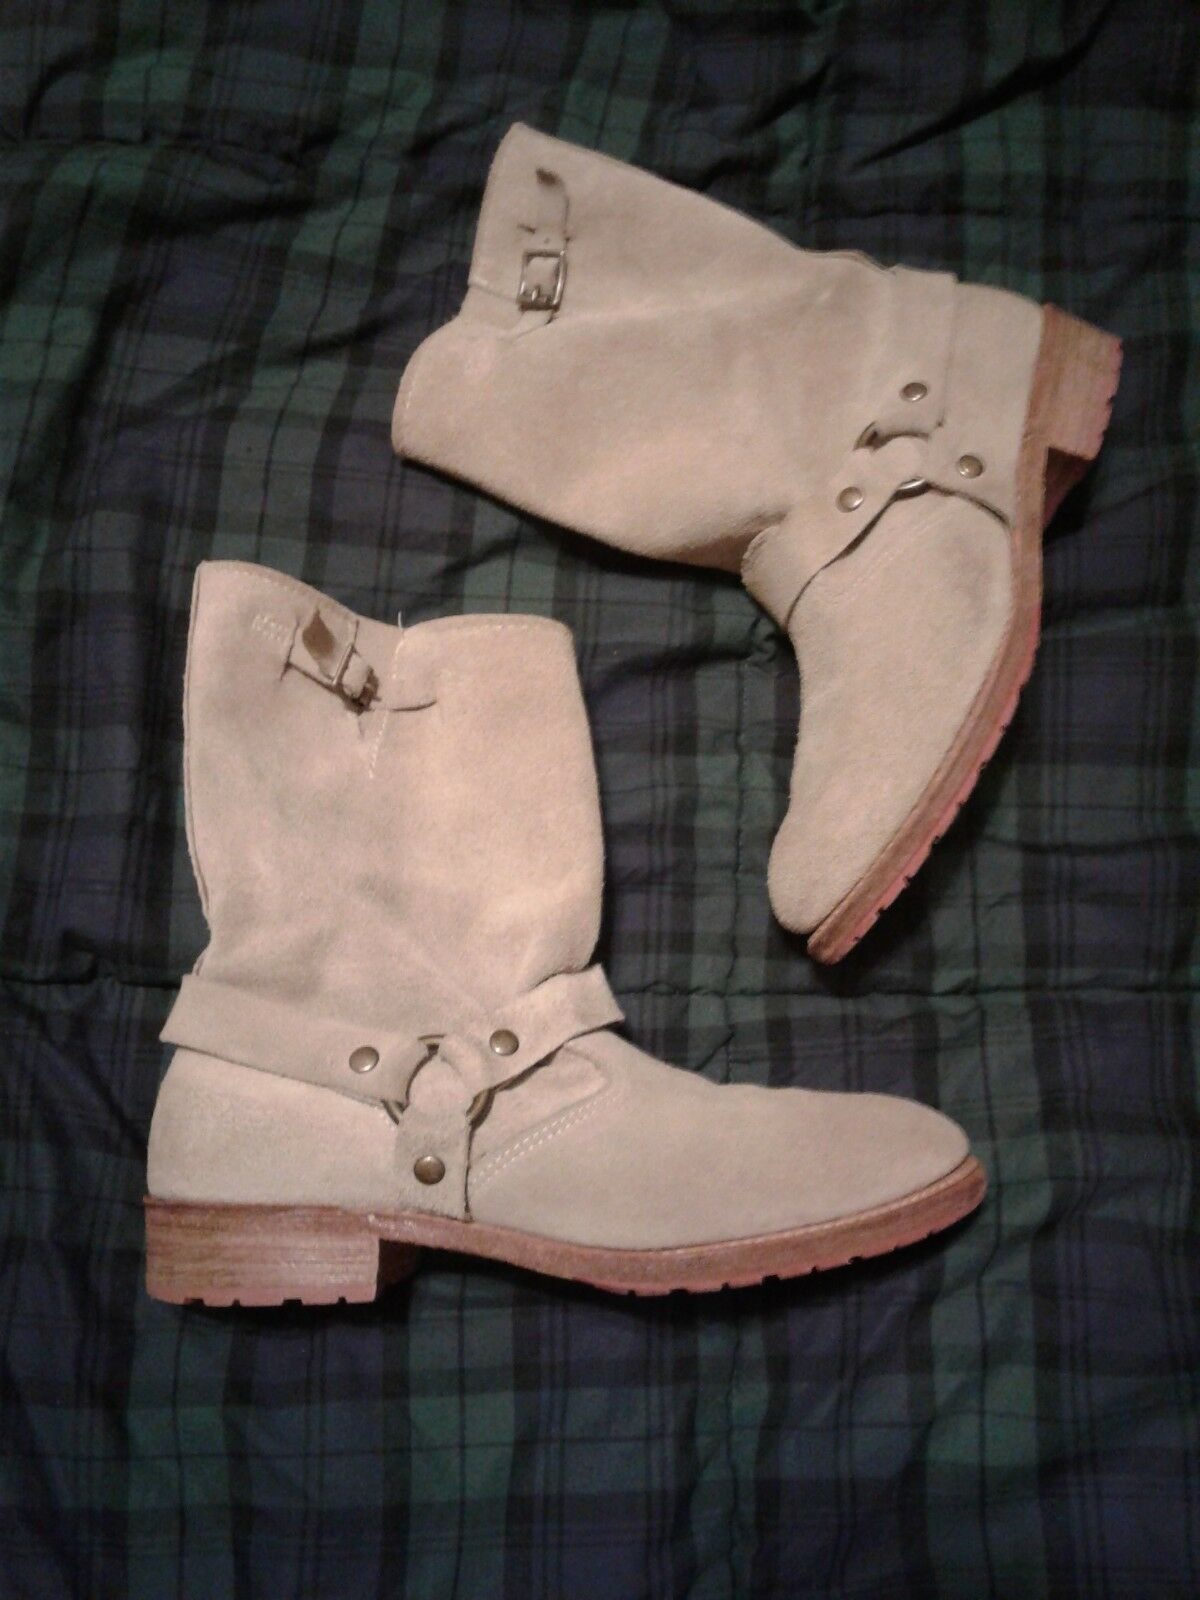 Women's suede leather boots Vintage 8 USA